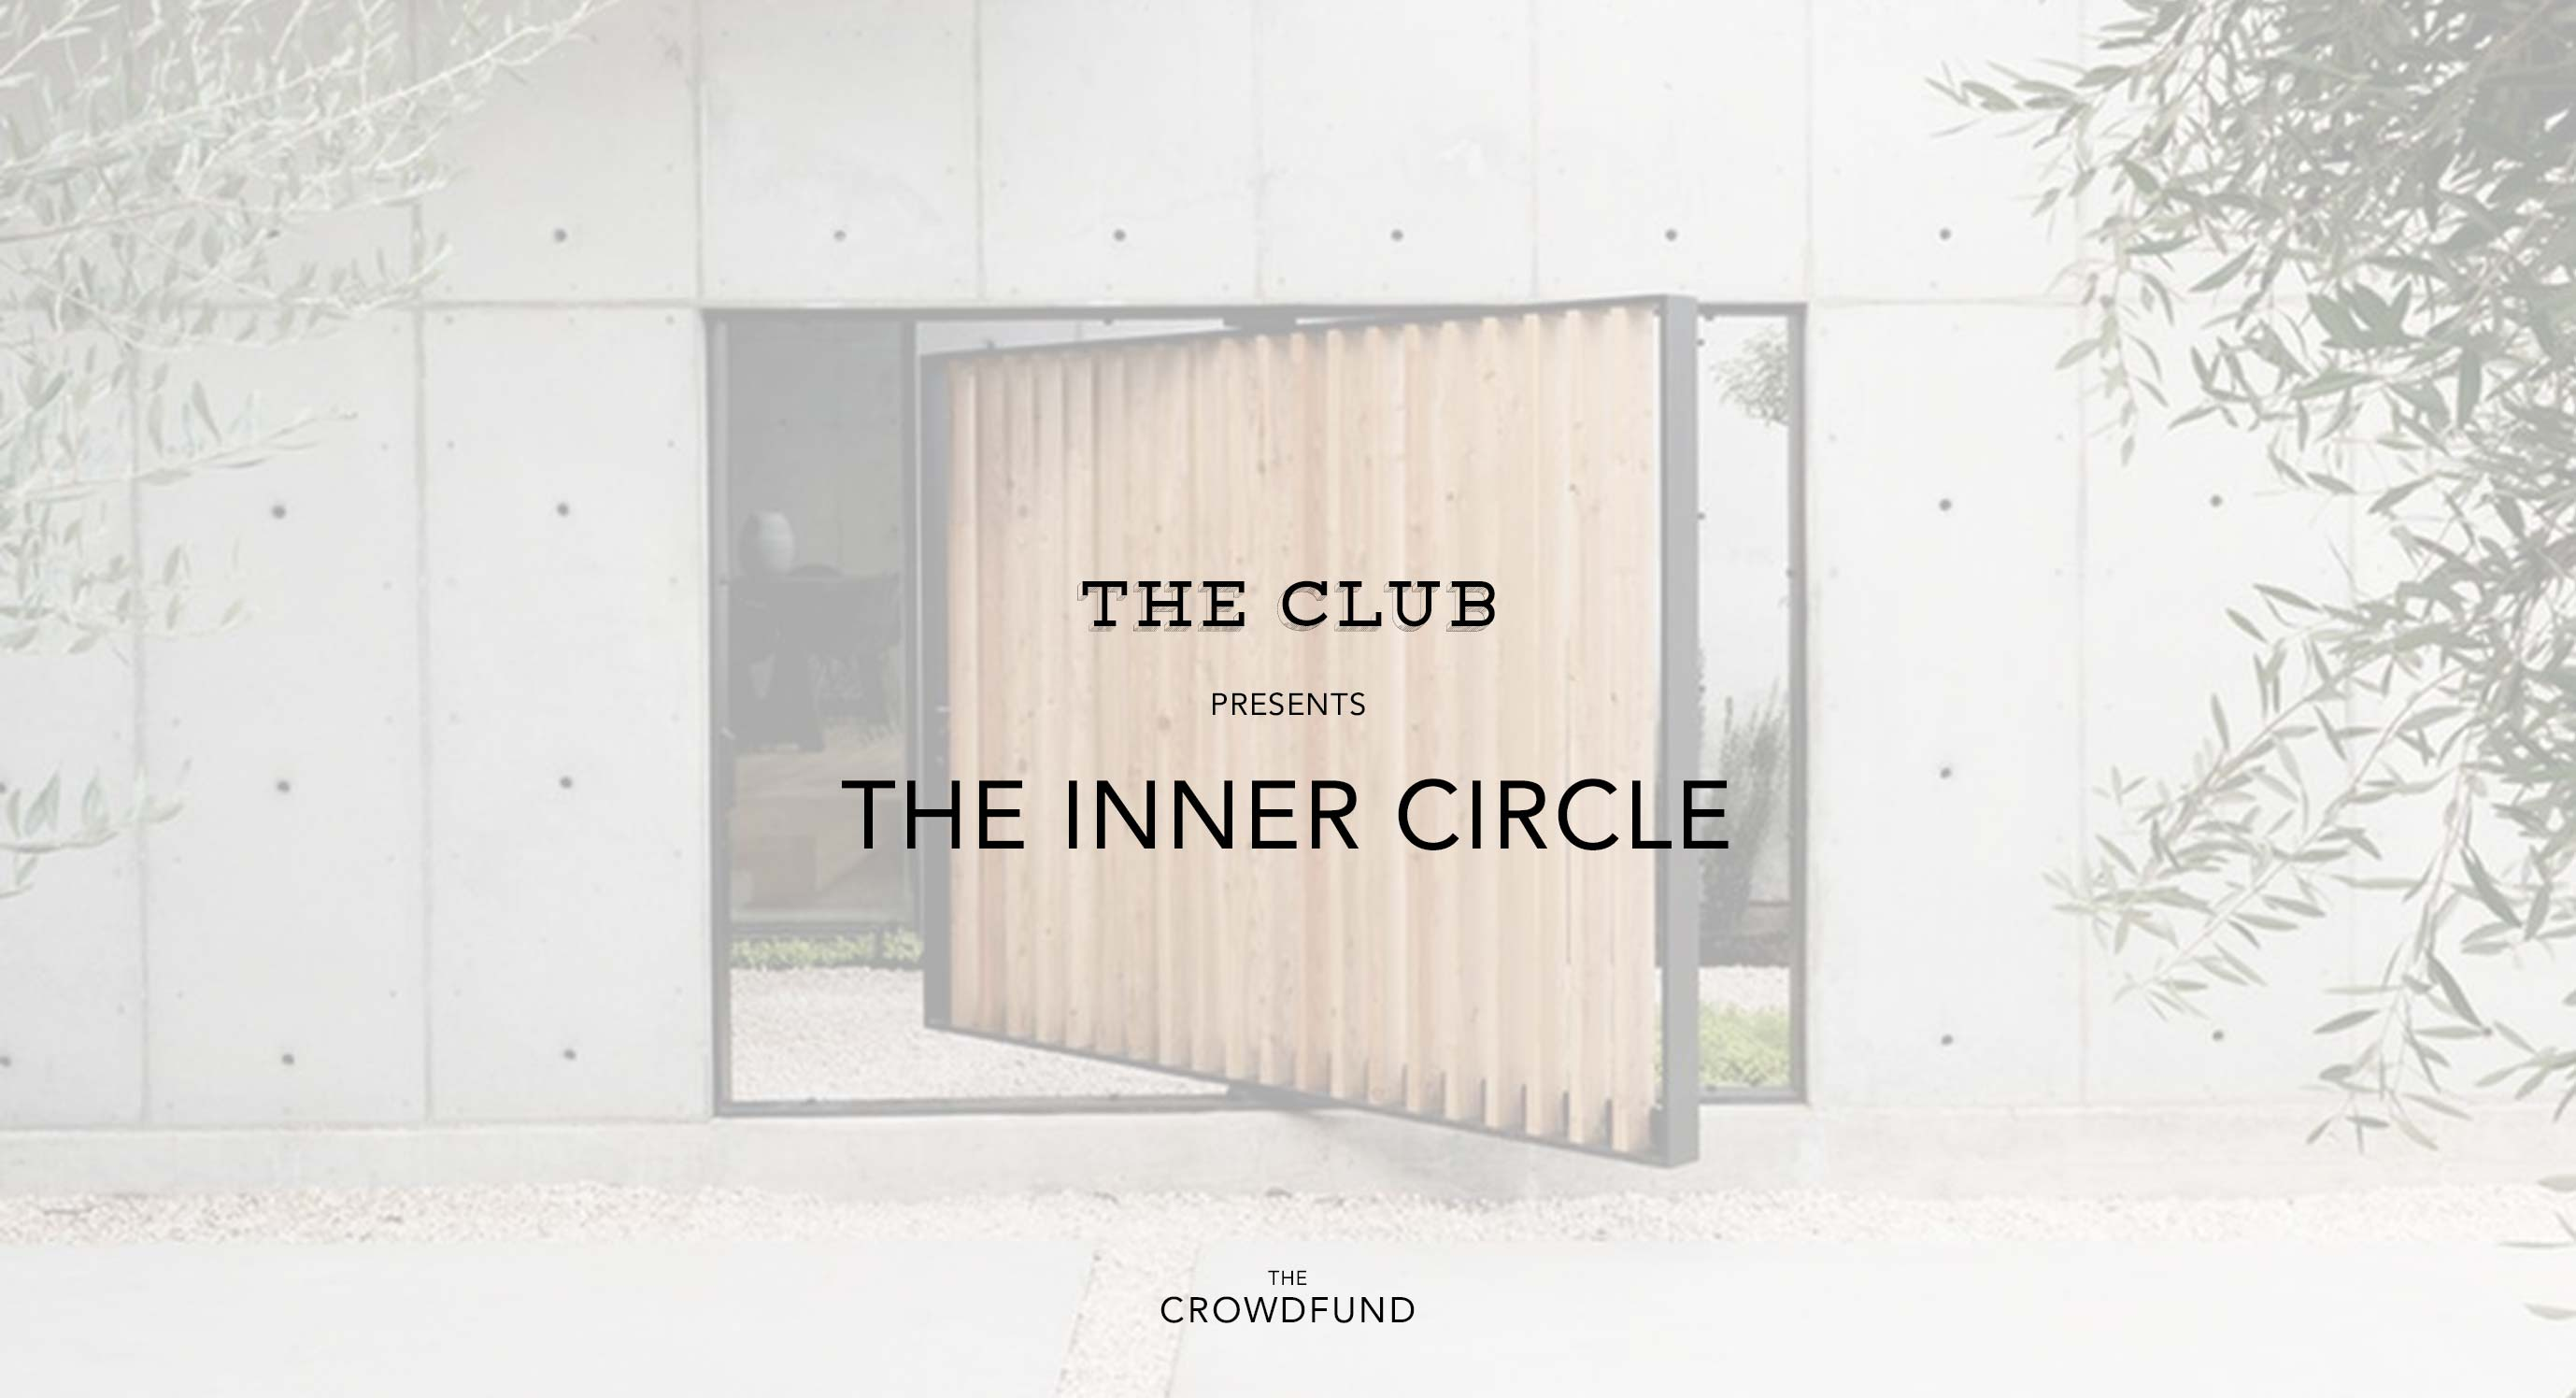 The Crowdfund - Welcome To The Inner Circle